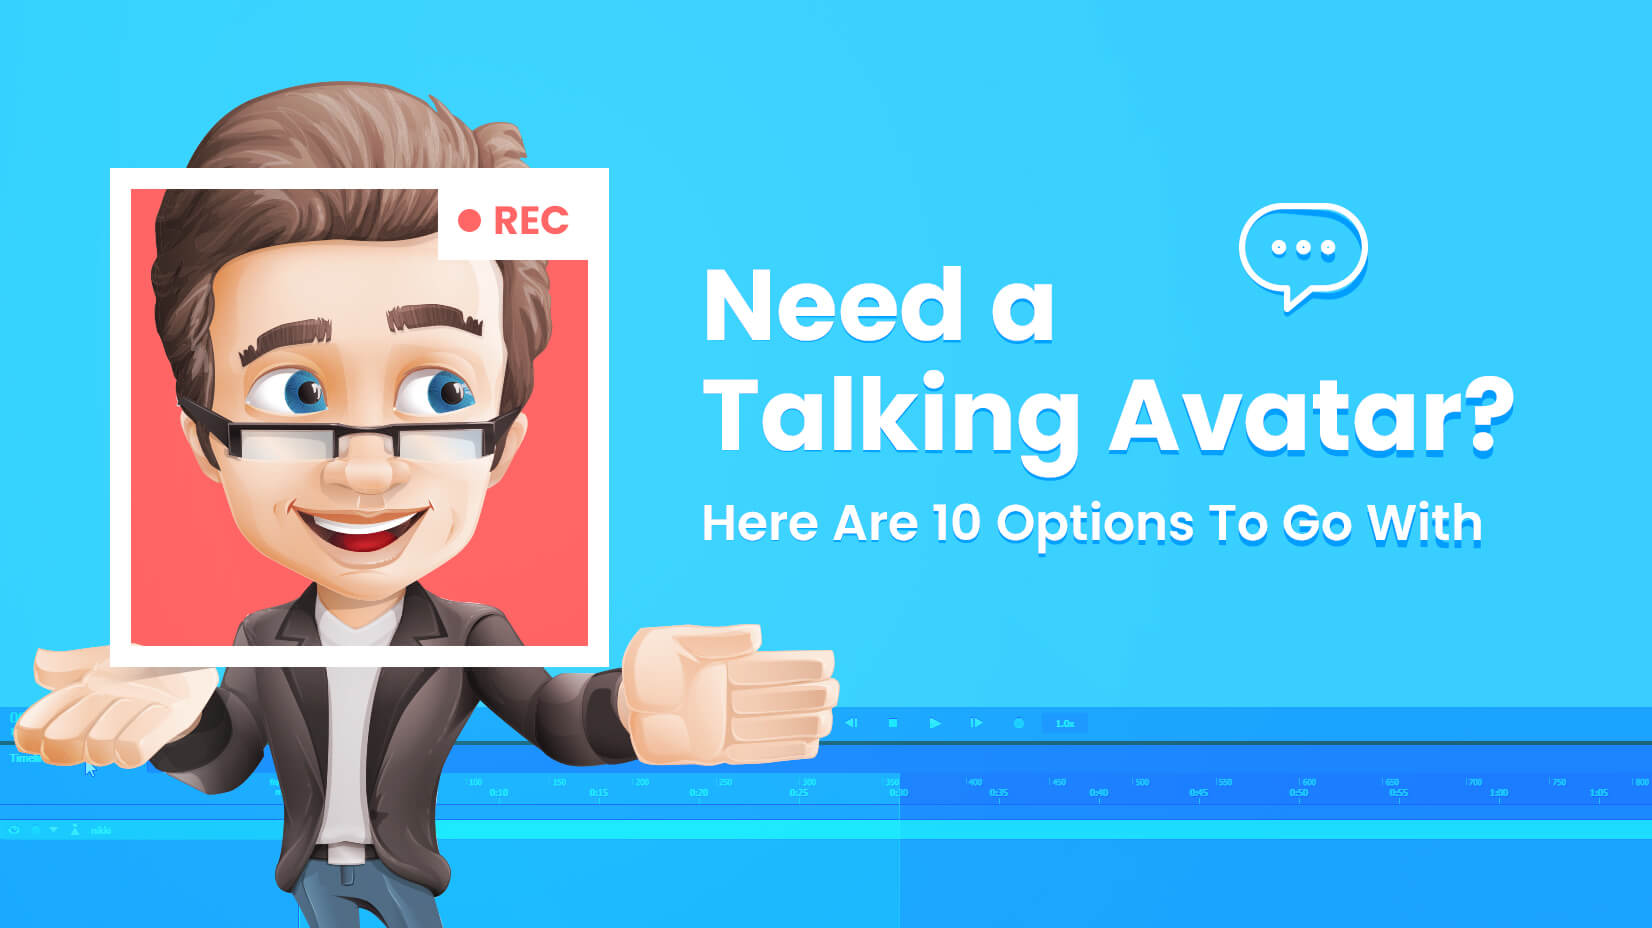 Need a Talking Avatar? Here Are 10 Options To Go With